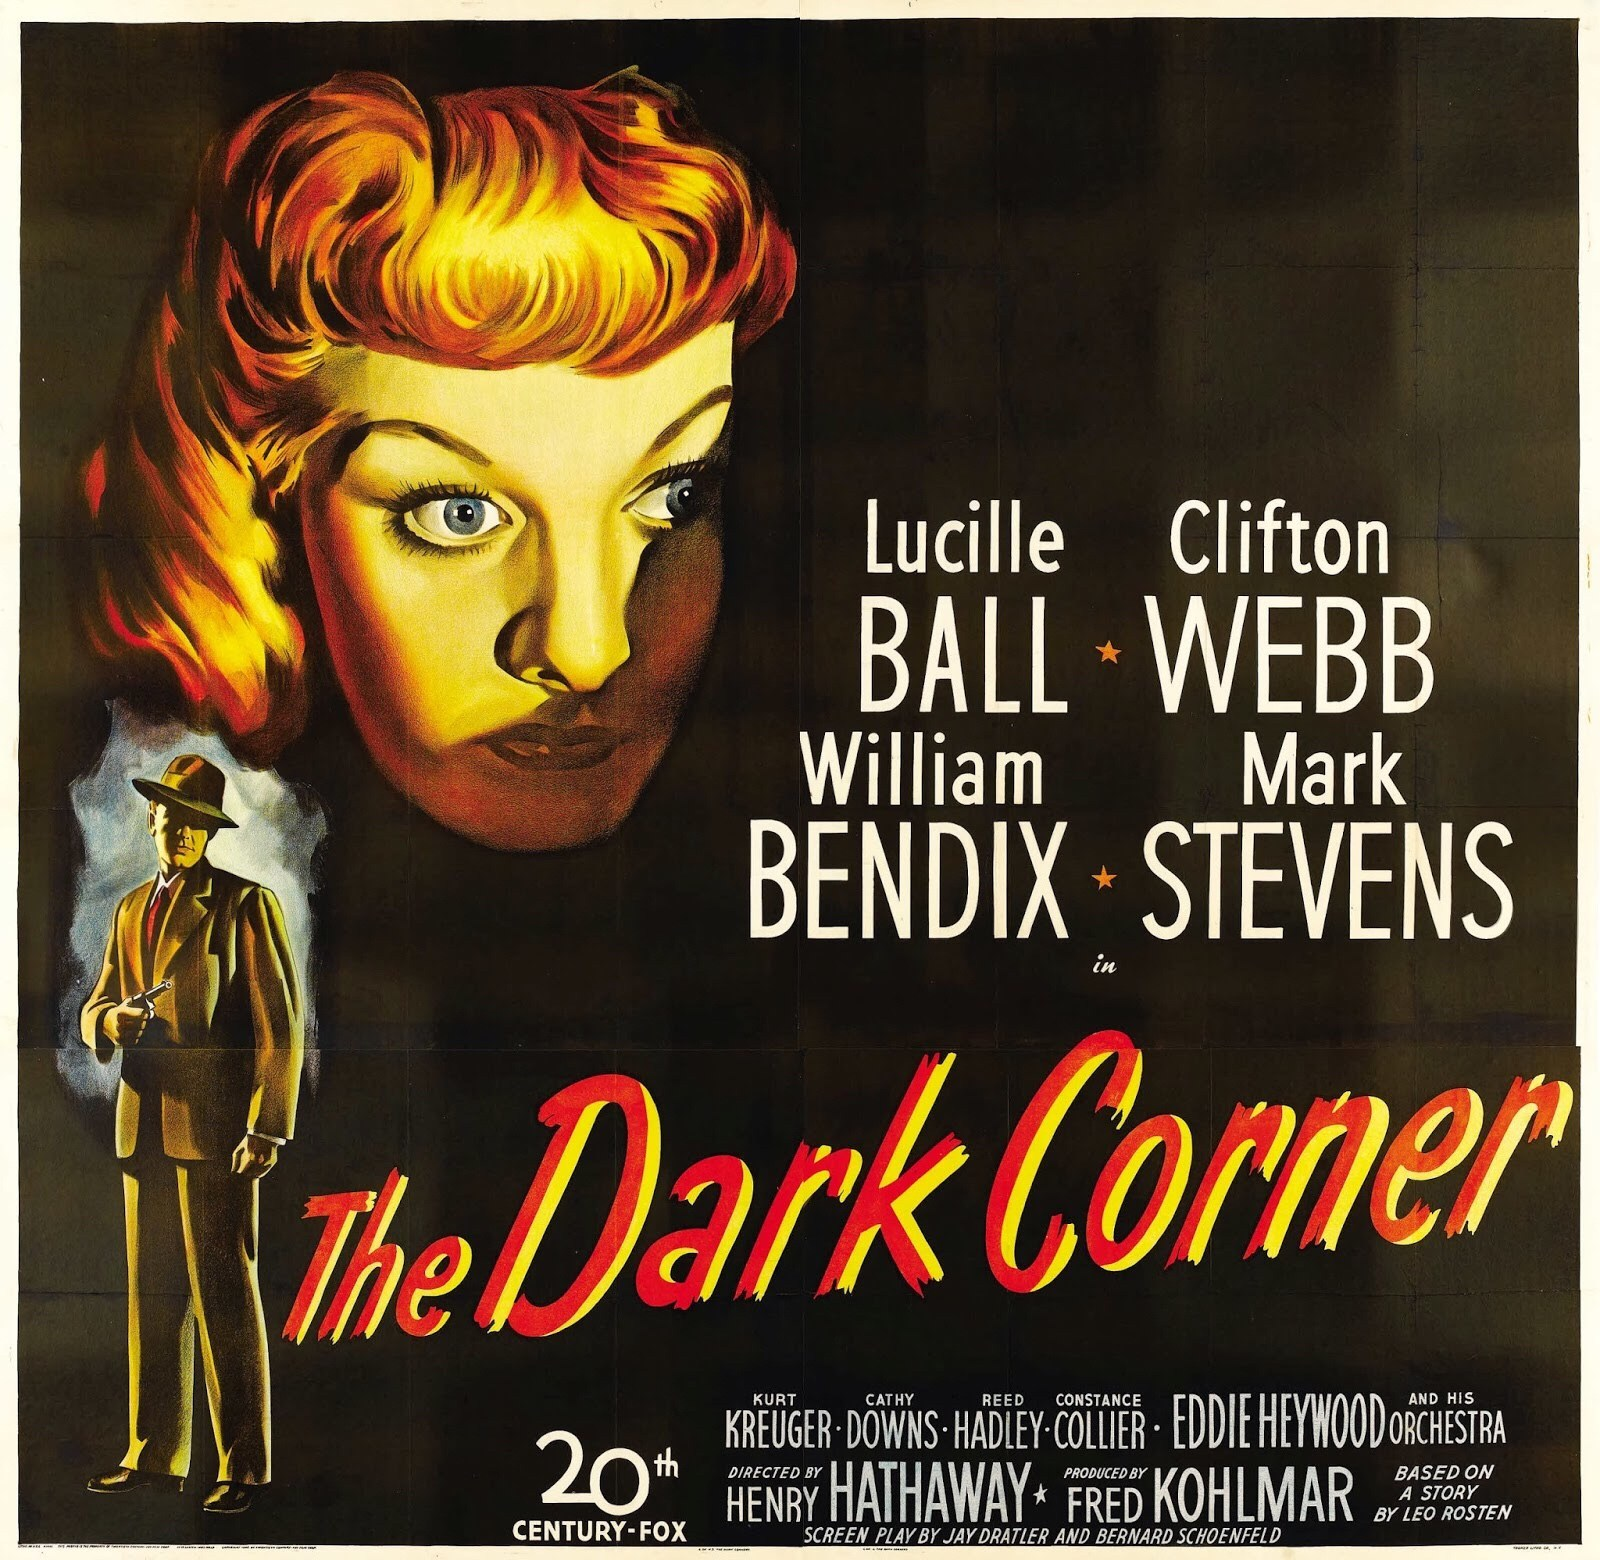 STUDIO EXEC'S FILM NOIR BUCKET: 1. THE DARK CORNER